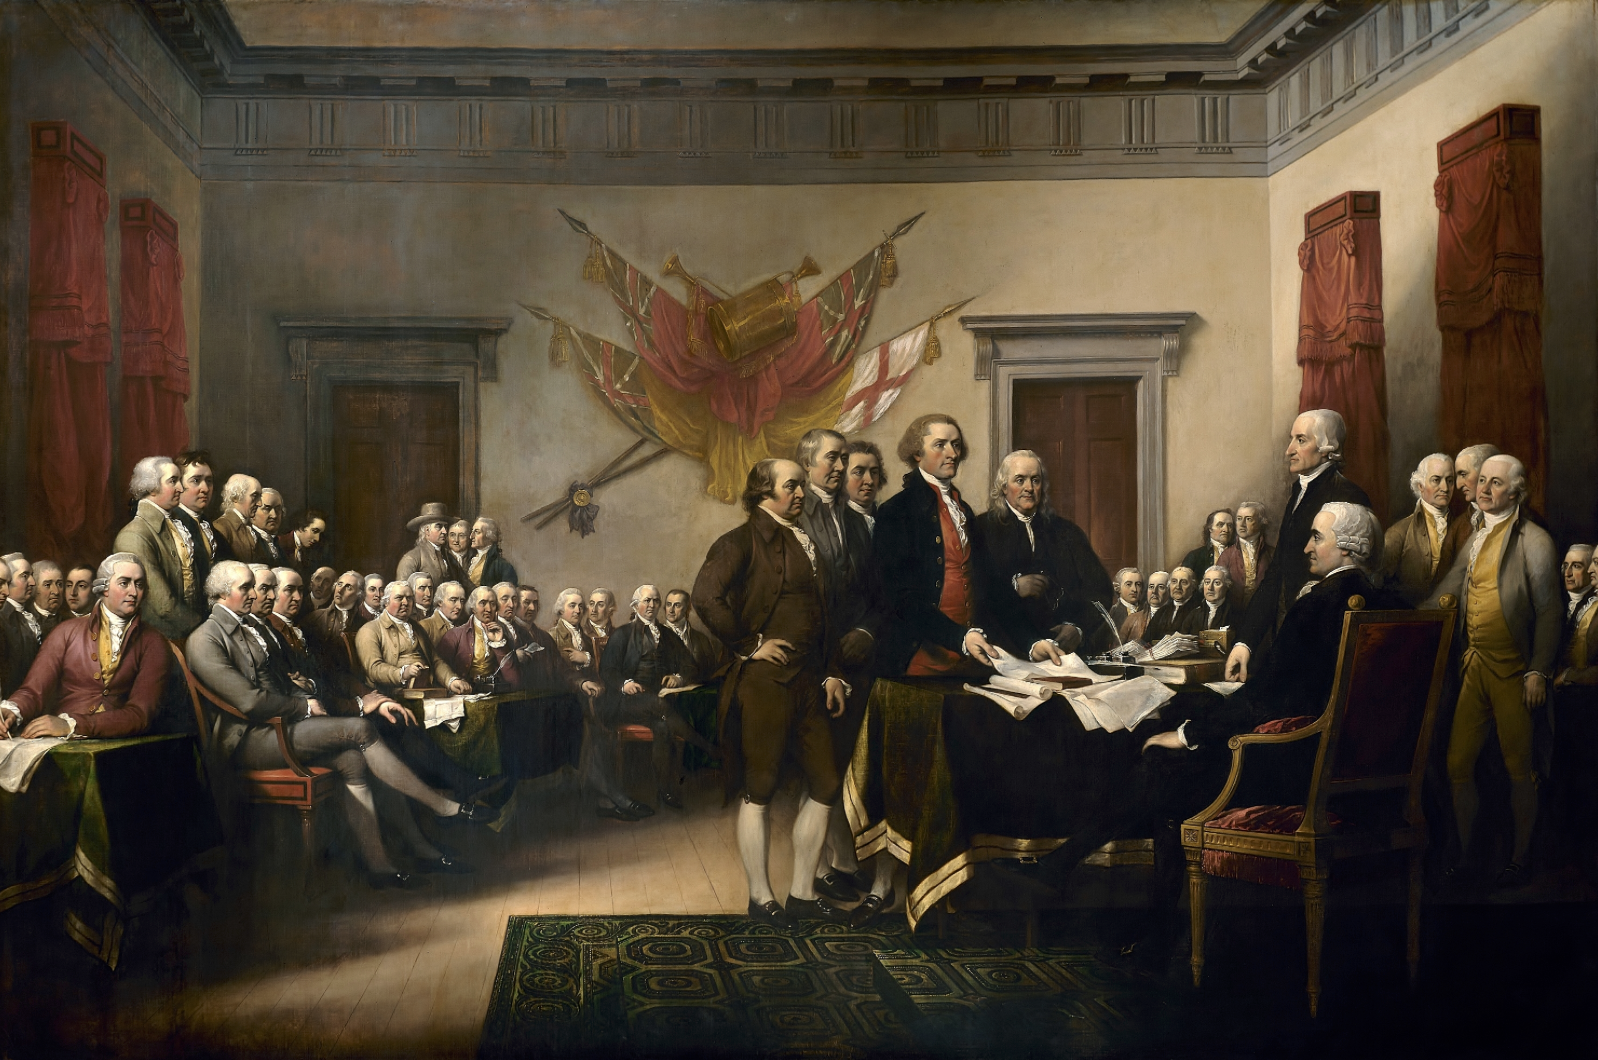 Portrait of the founding fathers and signing of the Bill of Rights. United States.